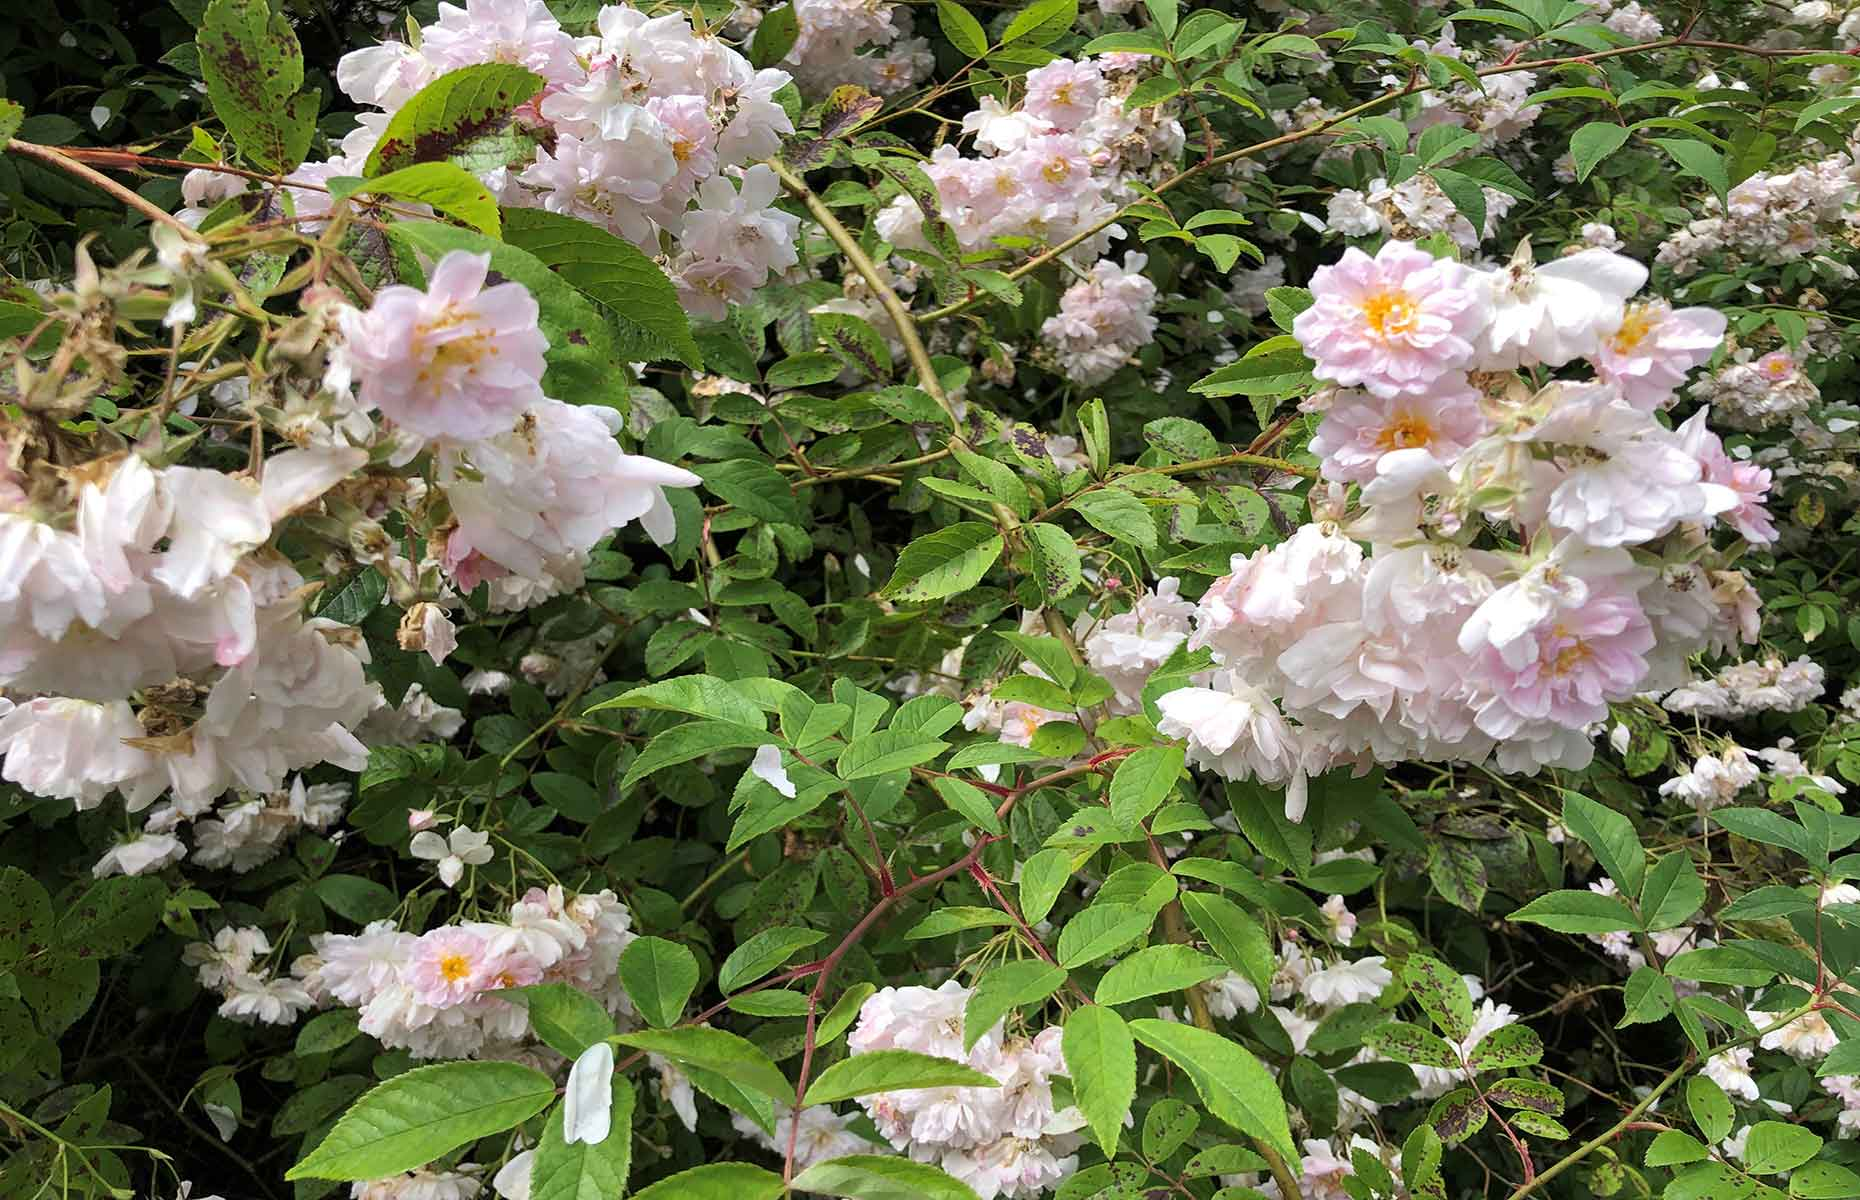 Rose bush (Image: Photo by Daisy Meager)